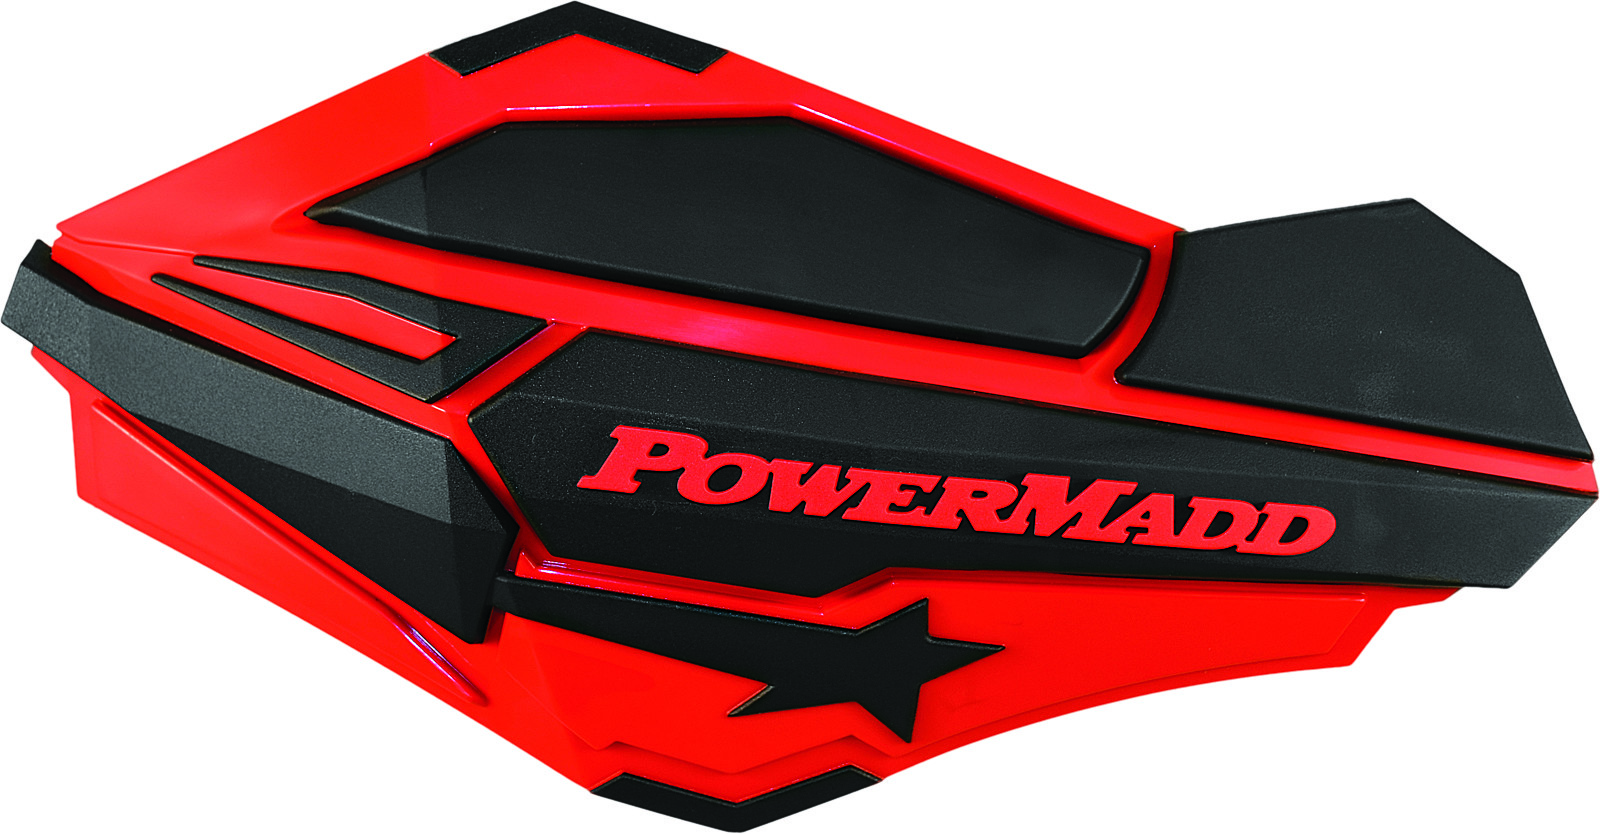 Sentinal Handguards (Red/Black)